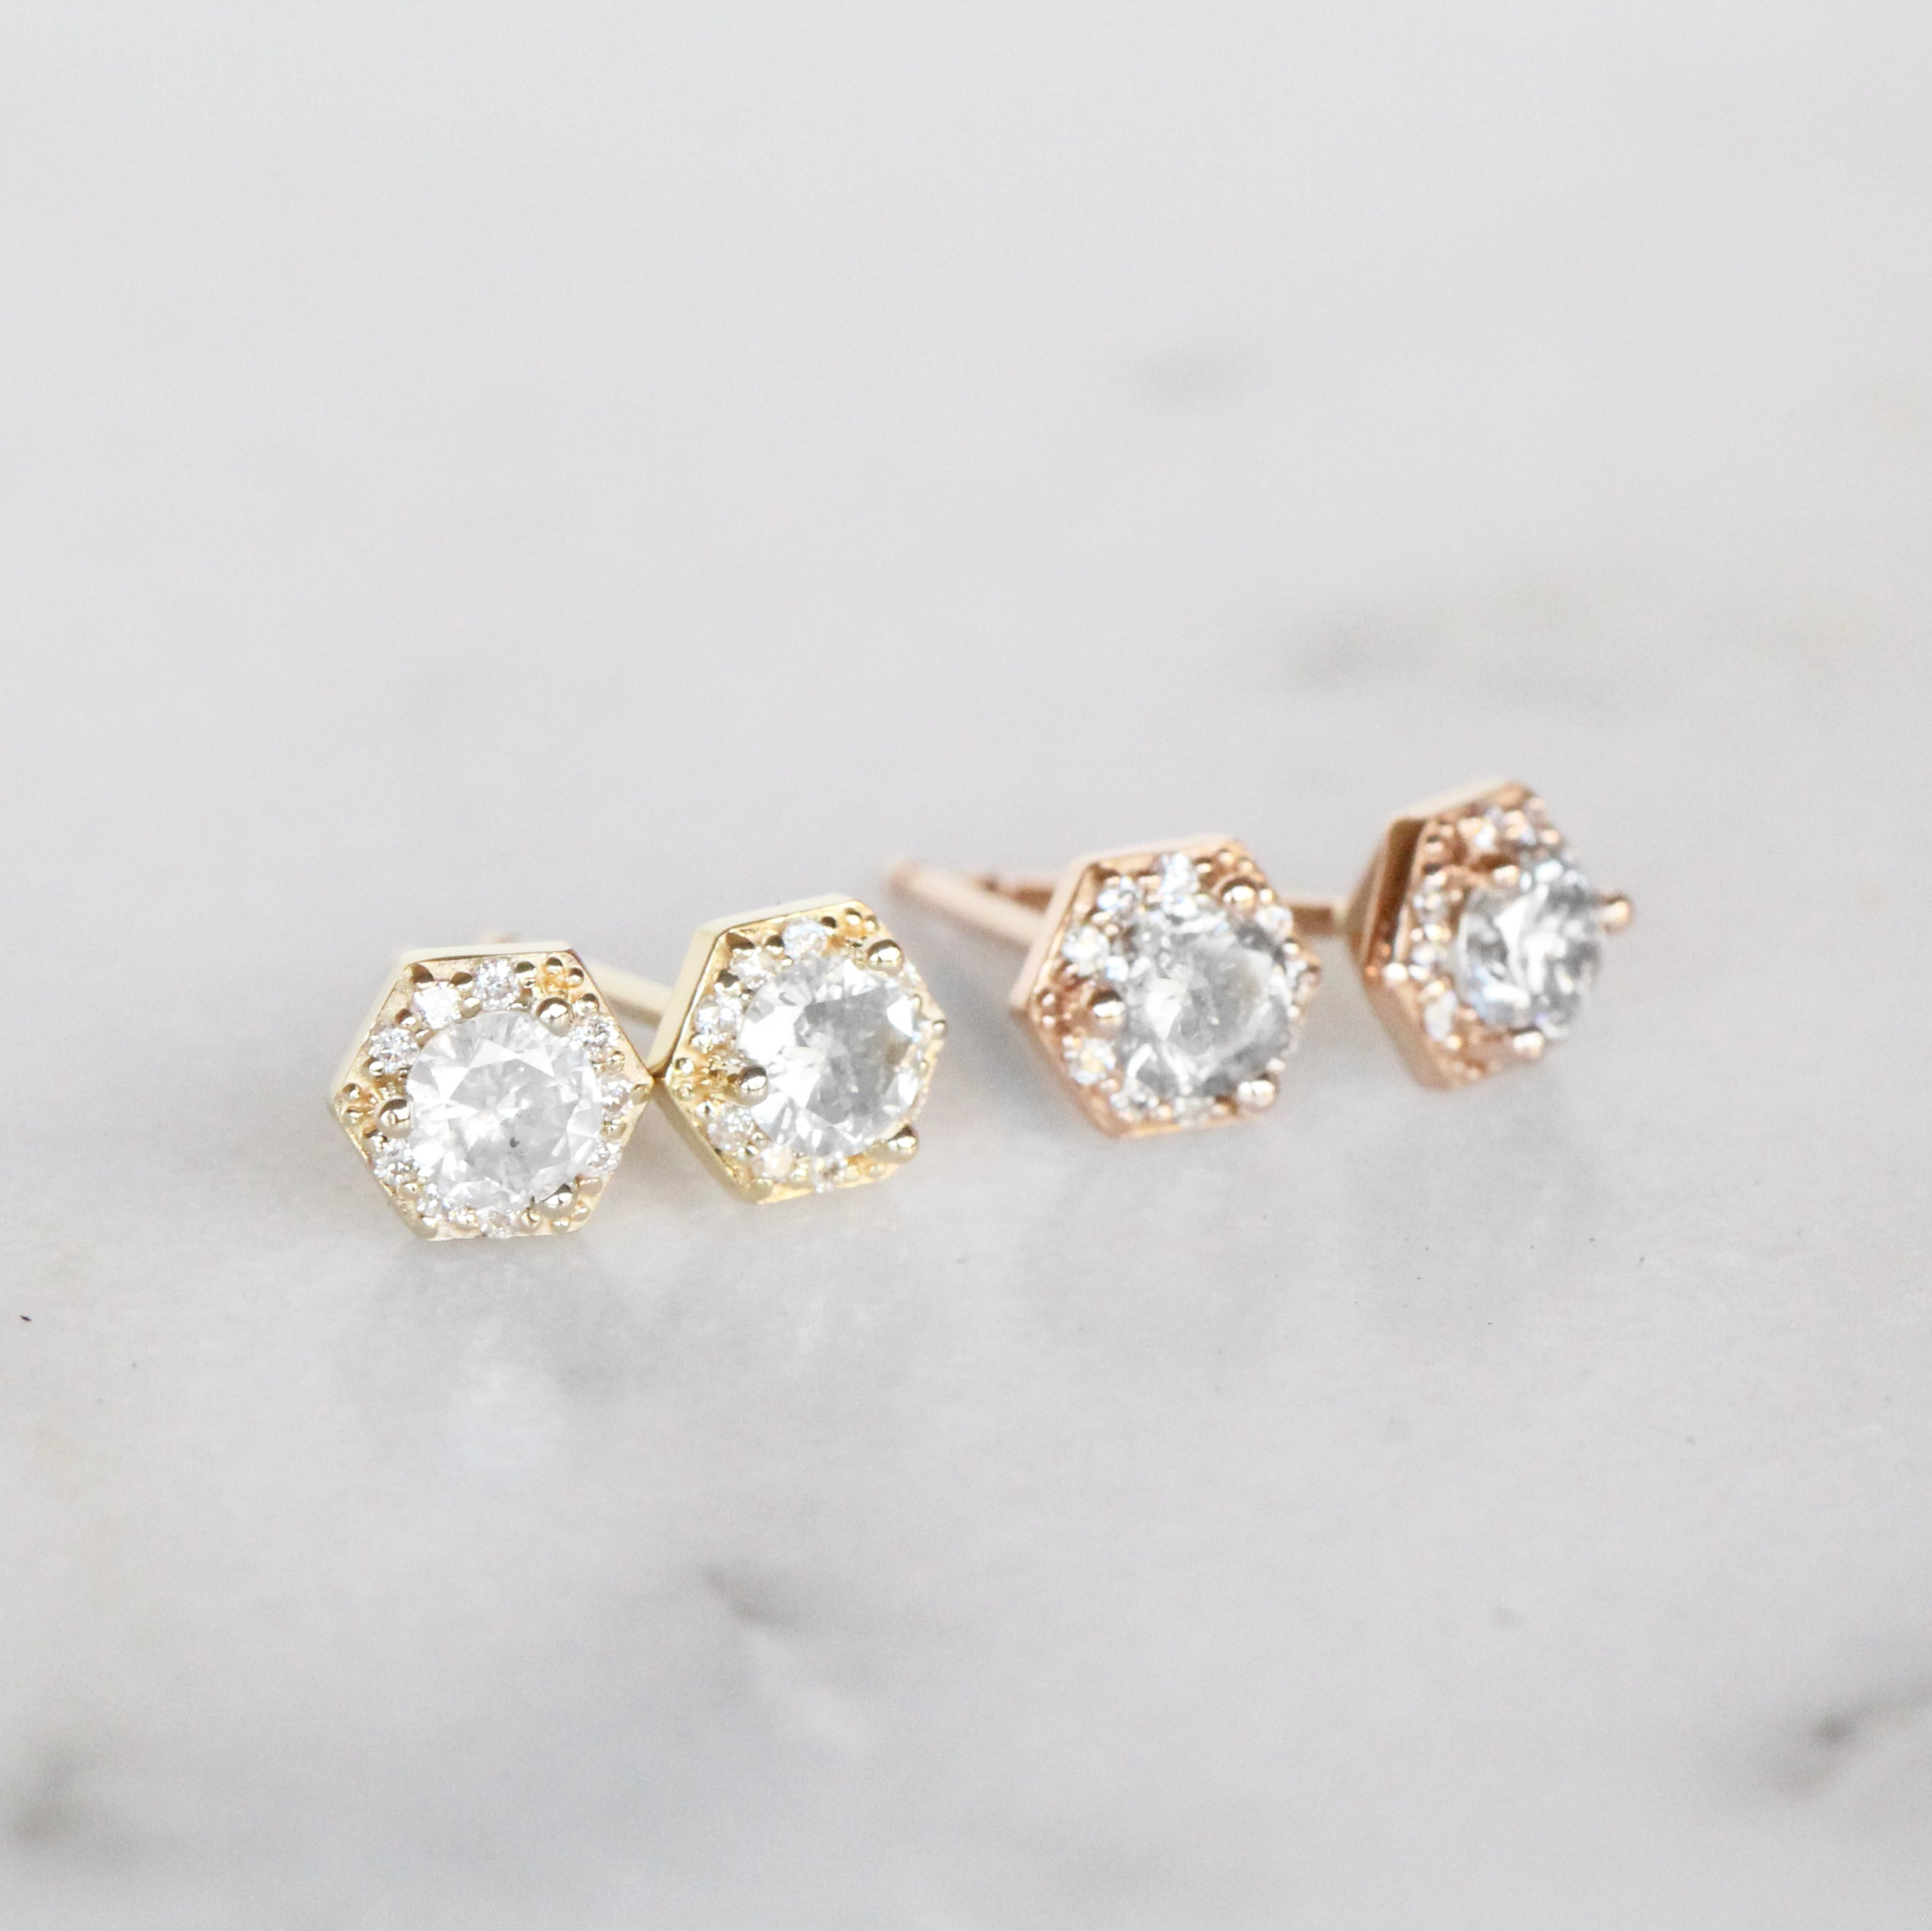 .35 Carat Hexagon Halo Earrings Stud Pair with Light Gray Celestial Diamonds in 14k gold- Ready to Ship - Midwinter Co. Alternative Bridal Rings and Modern Fine Jewelry